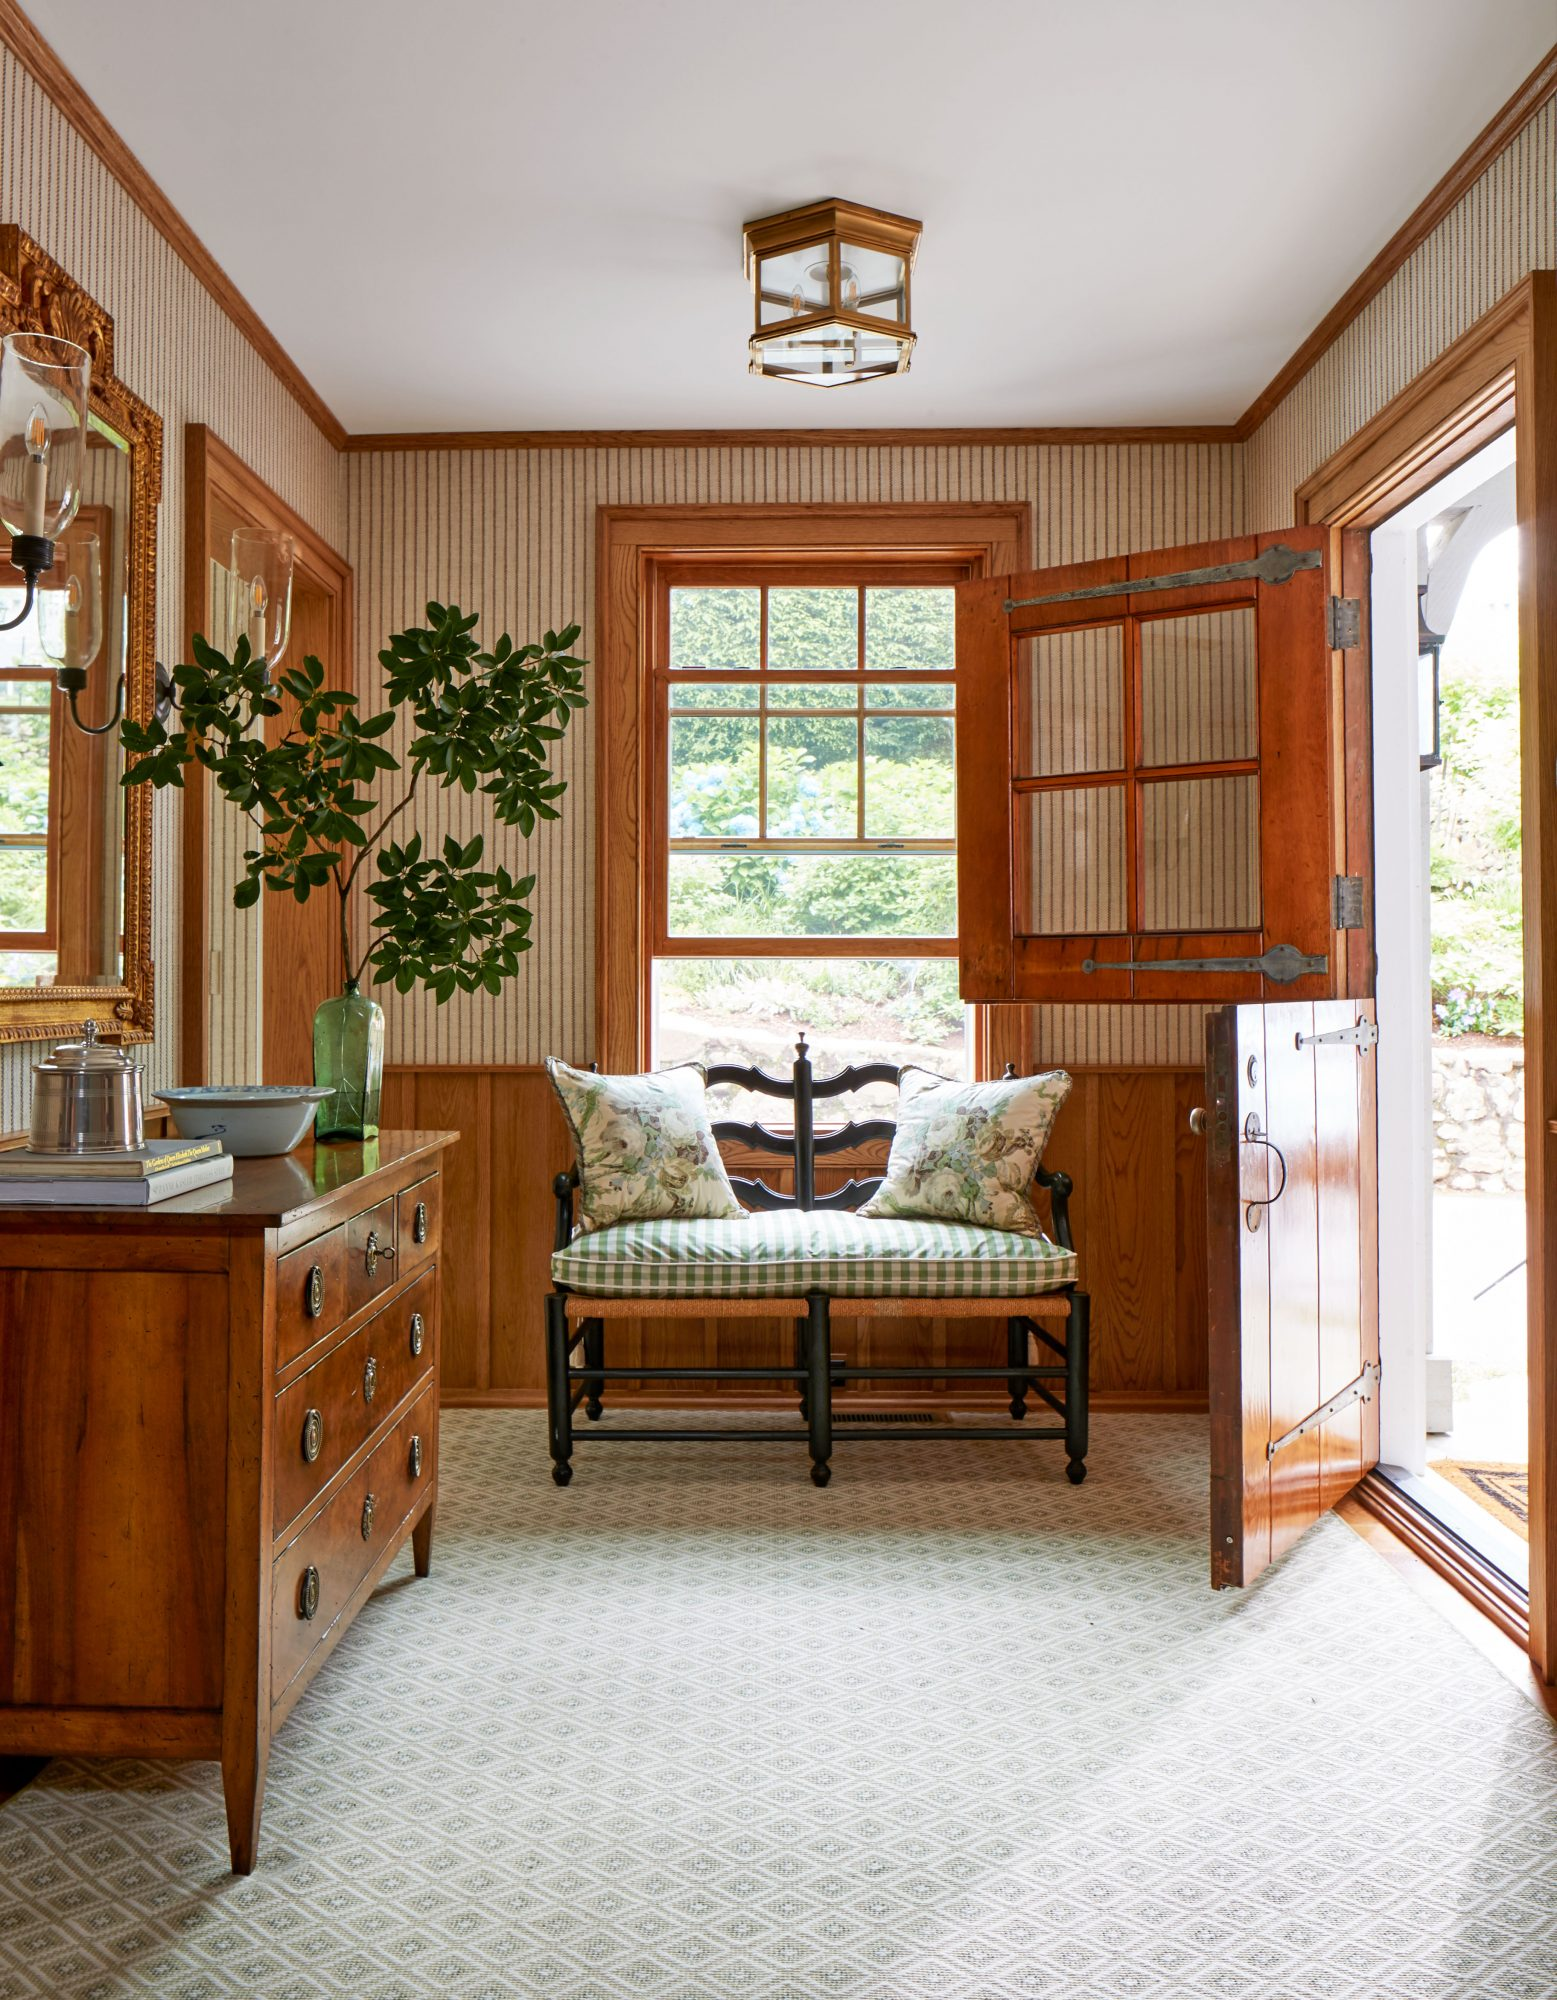 1929 Mountain House Entry Hall with Striped Wallpaper and Dutch Door